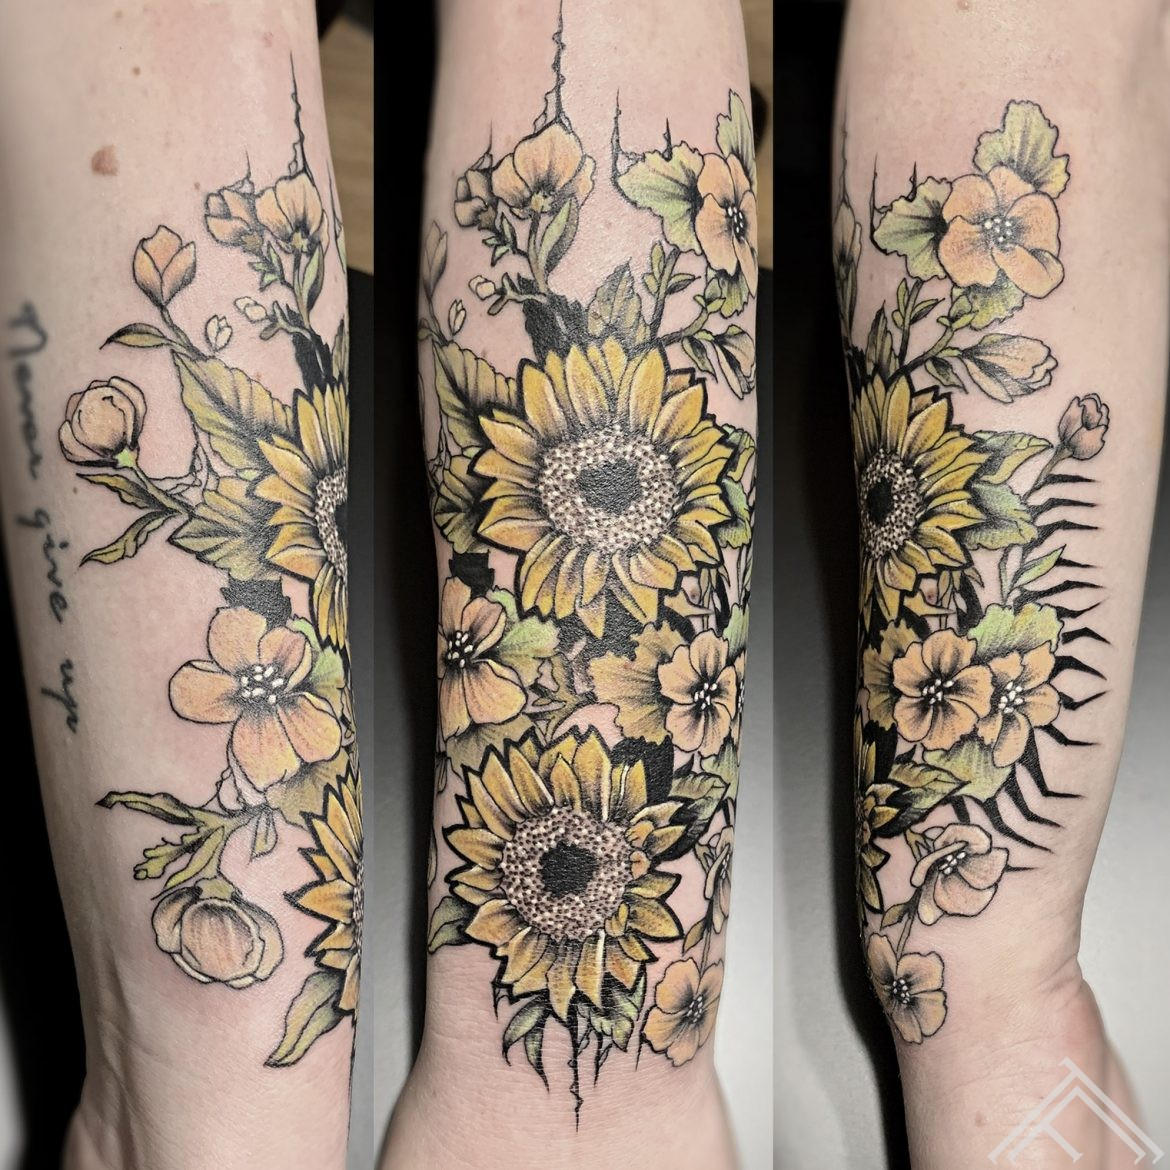 dmitryrazin-sunflower-saulespuke-tattoofrequency